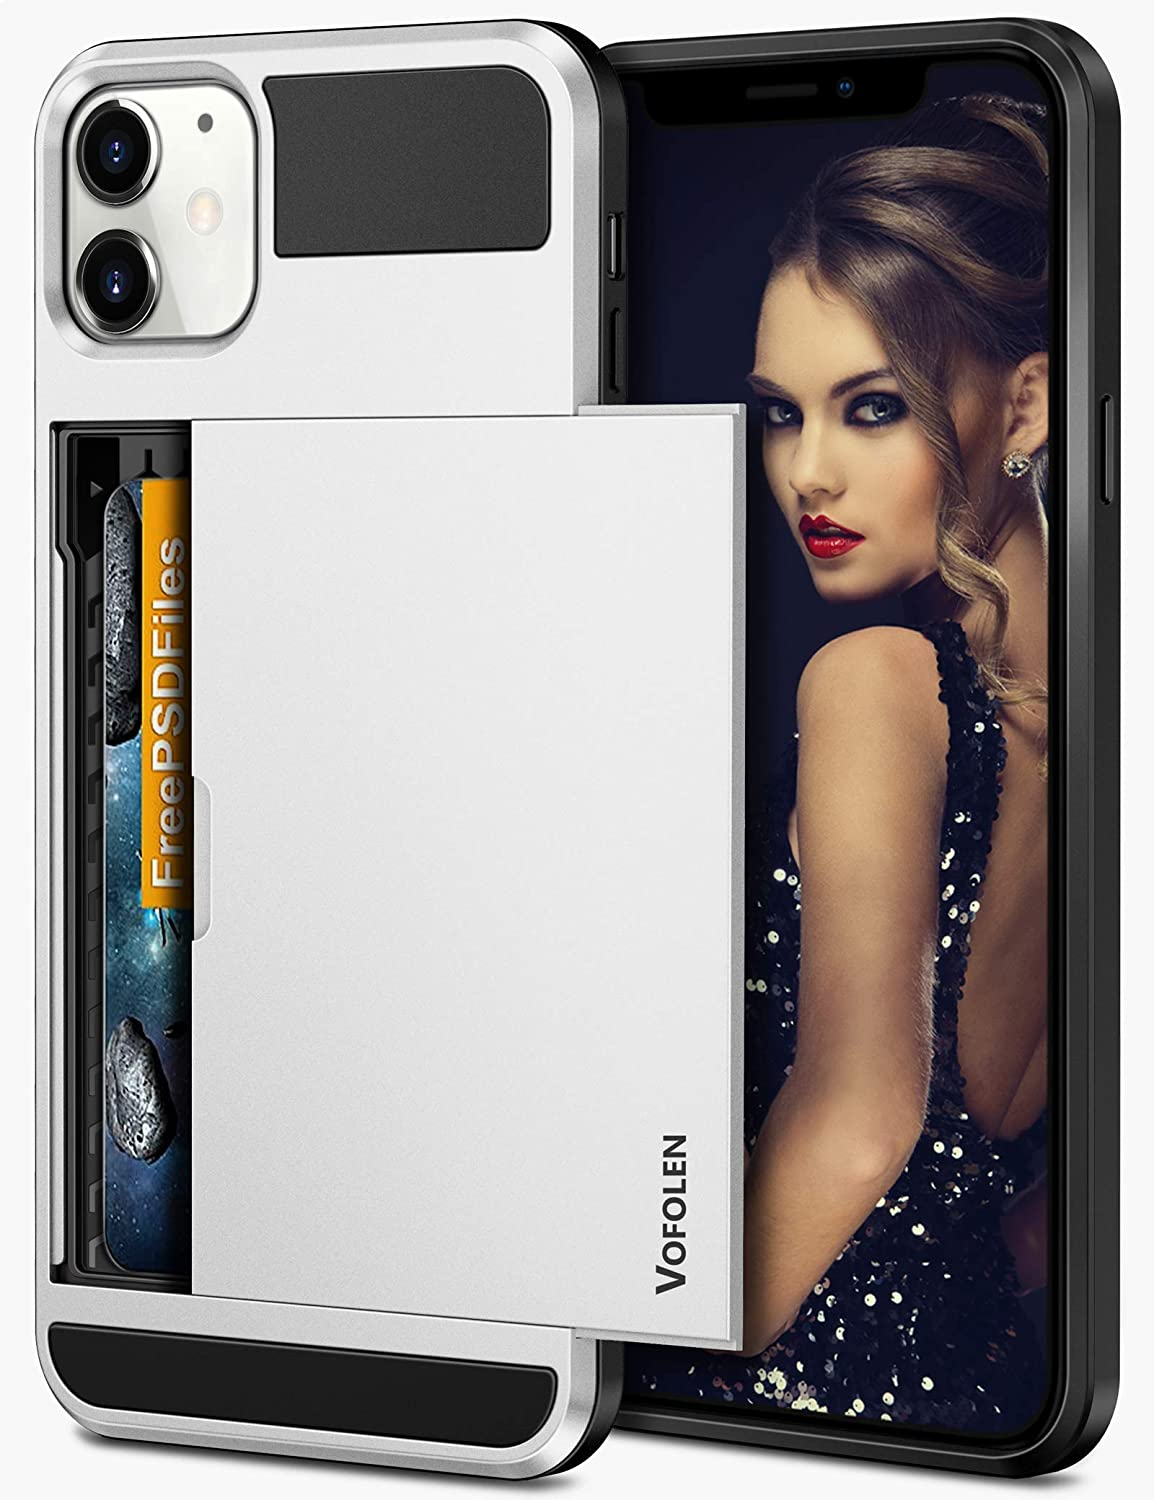 Vofolen Compatible with iPhone 12 Case 5G Wallet iPhone 12 Pro Cover Credit Card Holder Slot Sliding Back Pocket Anti-Scratch Dual Layer Protective Compatible with iPhone 12/ iPhone 12 Pro White